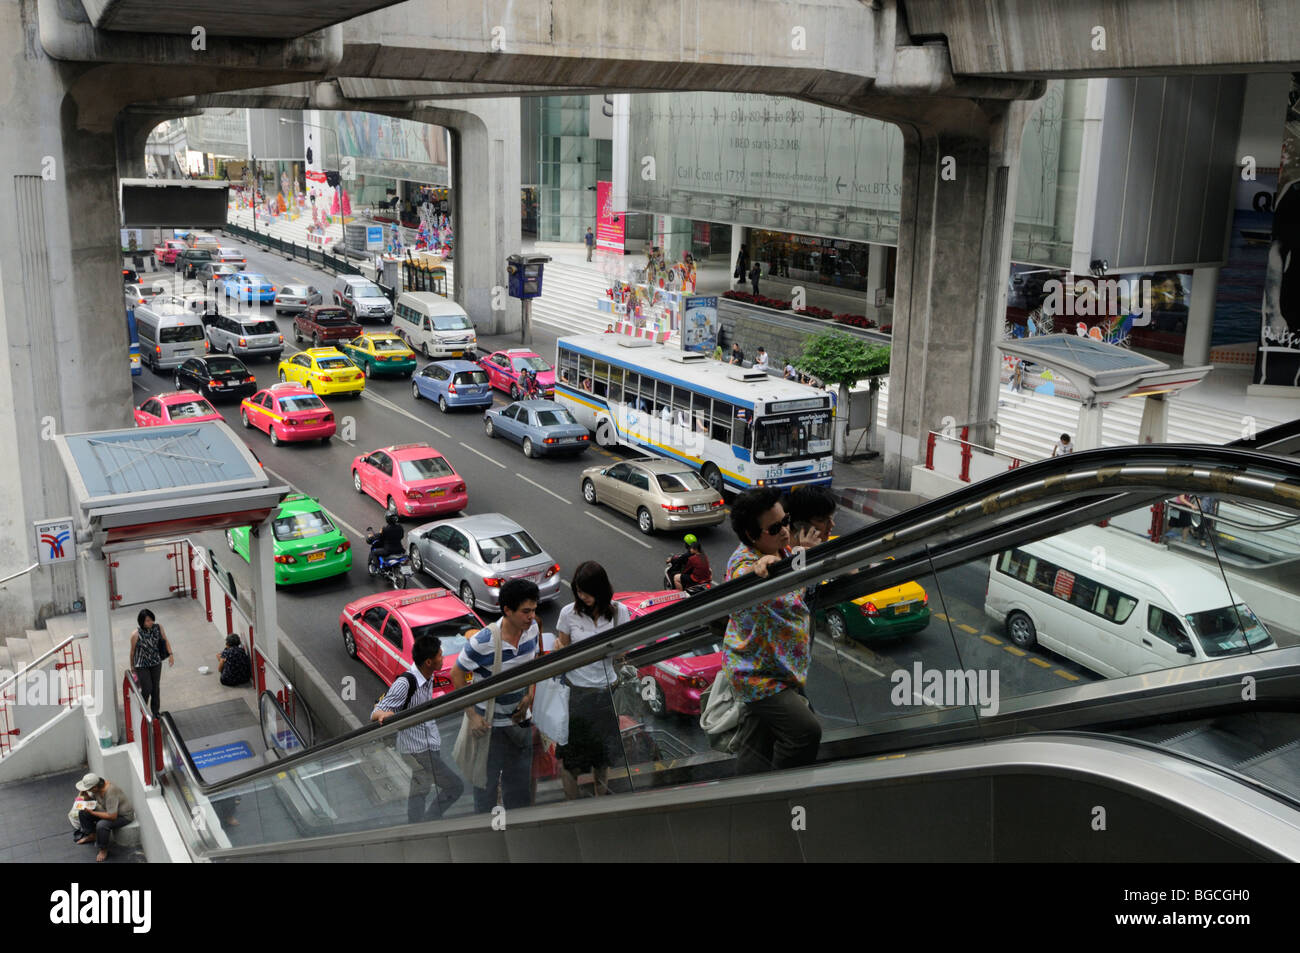 Thailand; Bangkok; Street Scene with Escalator up to Siam BTS Skytrain station - Stock Image